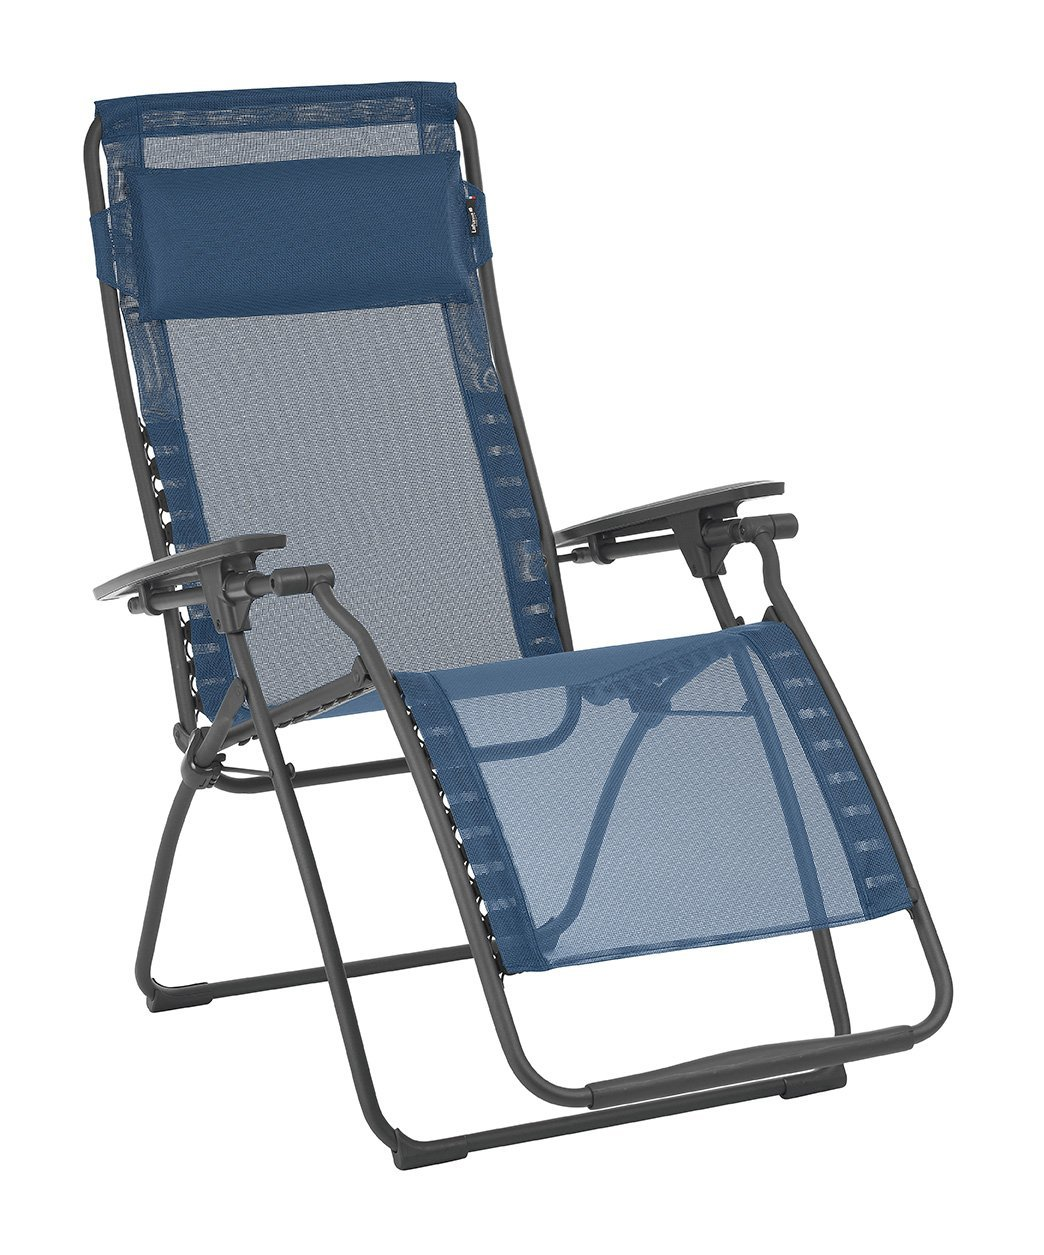 Top 10 Best Zero Gravity Lounge Chairs in 2020 Reviews | Buyer's Guide